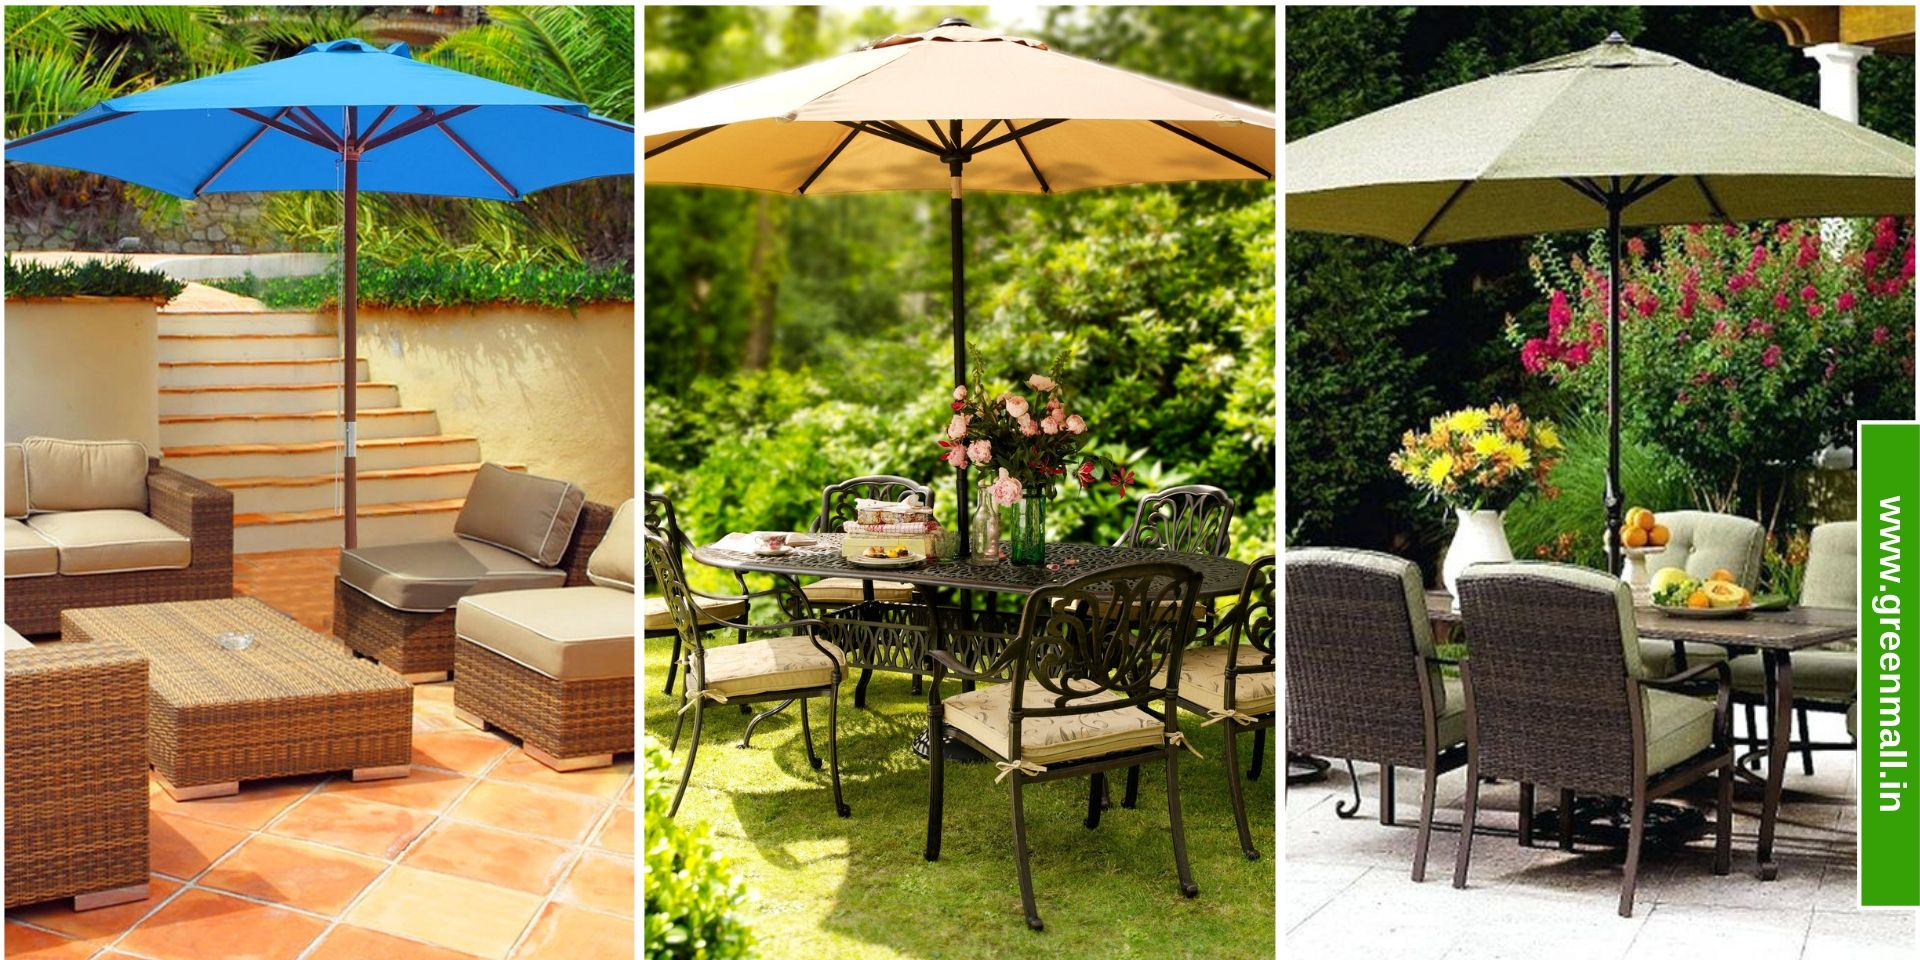 0ad73df54d Looking For Garden Umbrella In Kolkata? Know The Top 4 Benefits ...